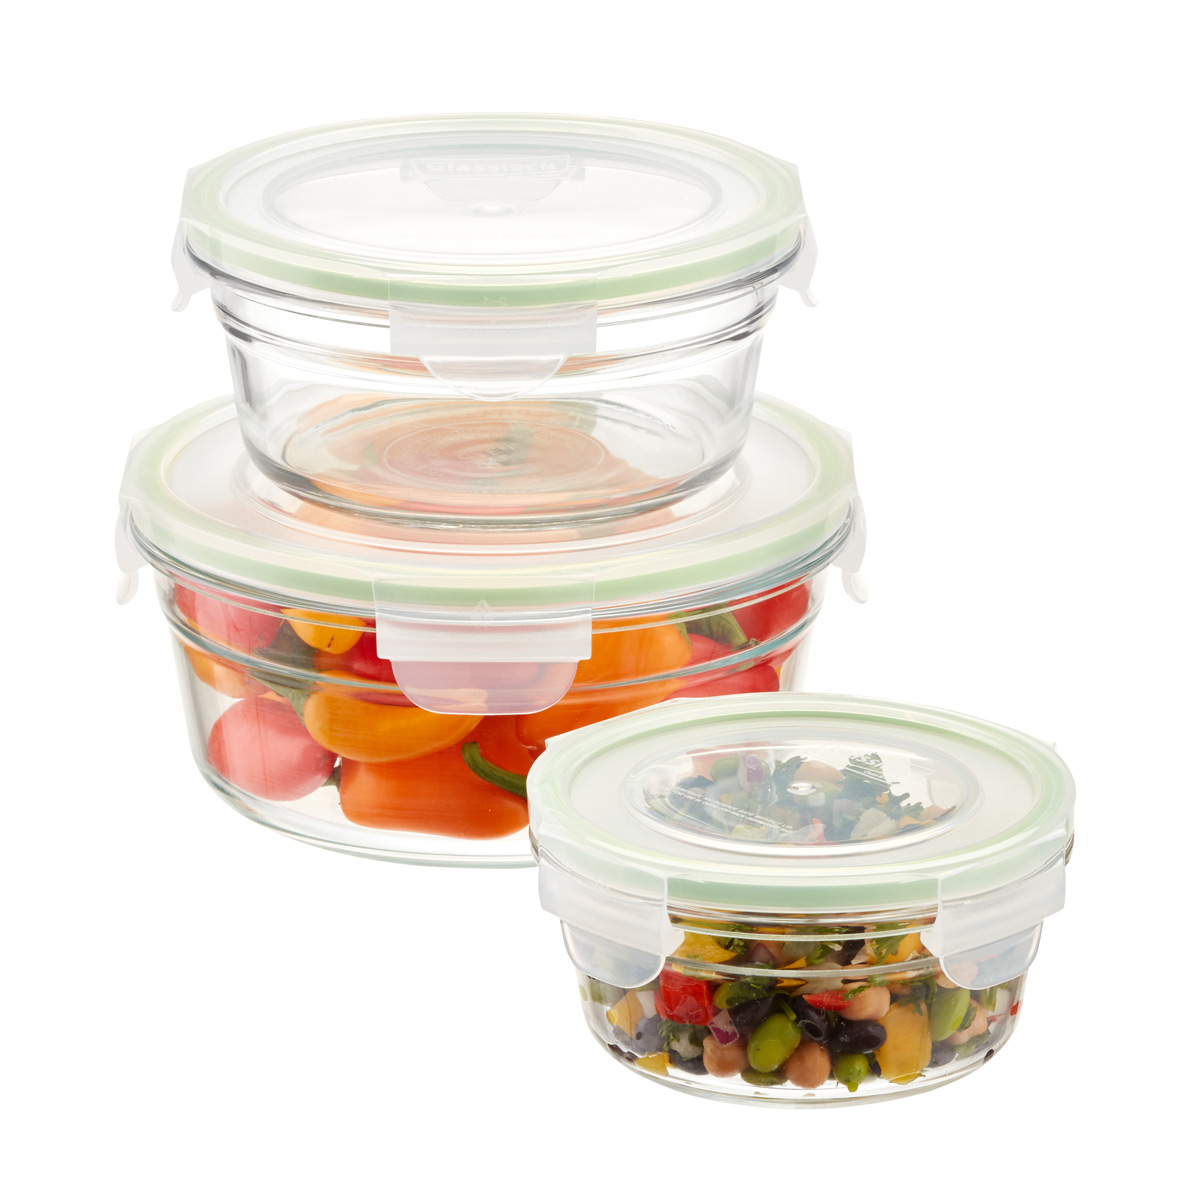 Amazing Glasslock Round Food Containers With Lids ...